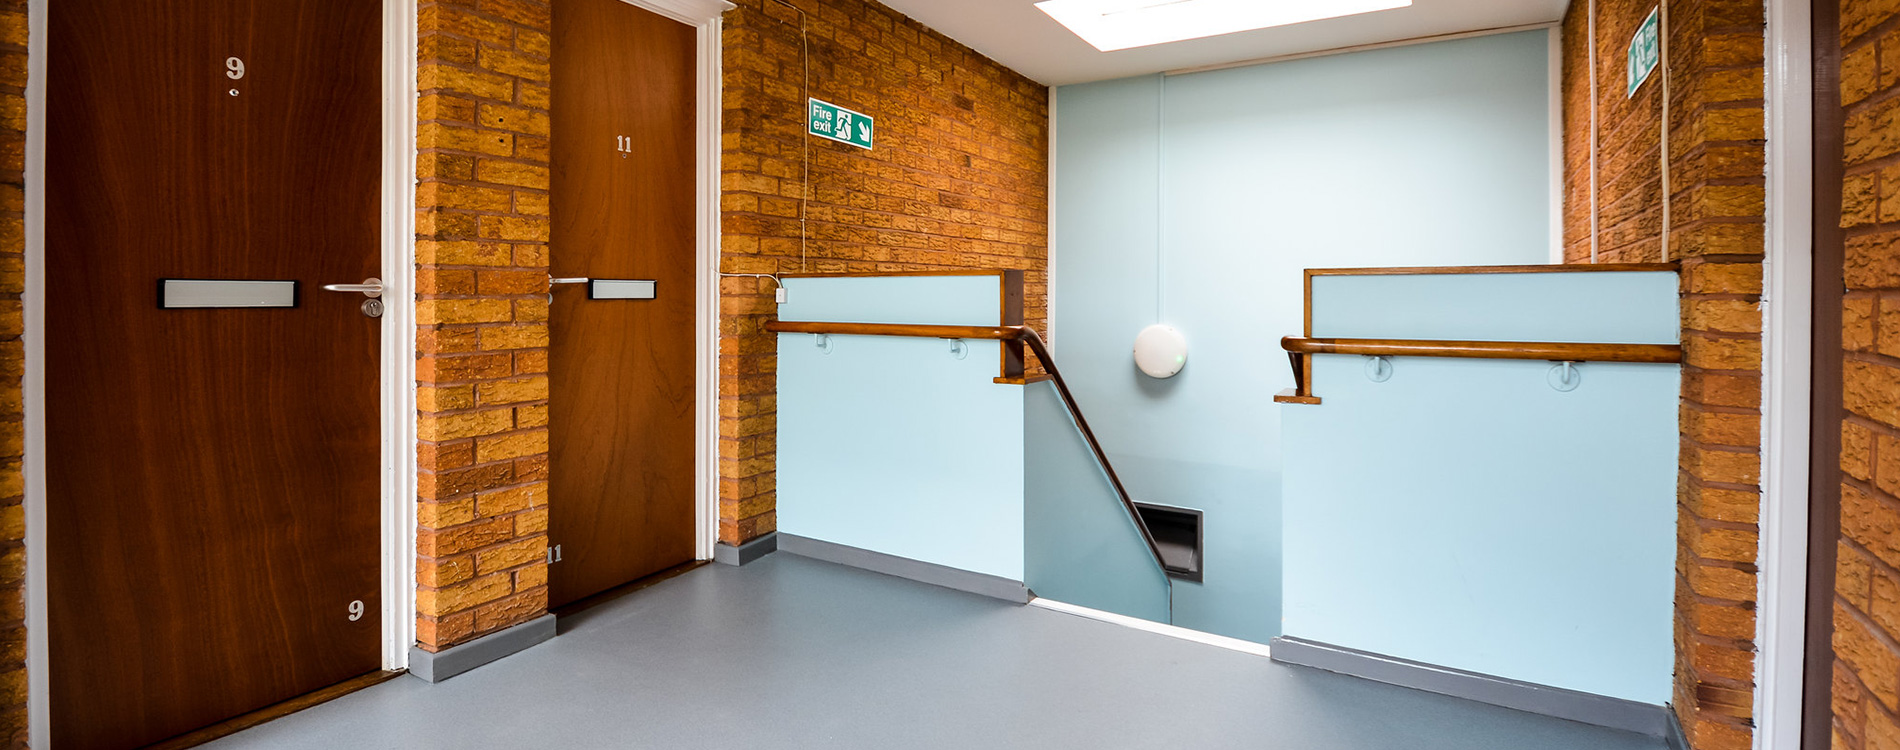 Staircase inside a residential property refurbishment shows a landing area with blue painted walls and new door installation